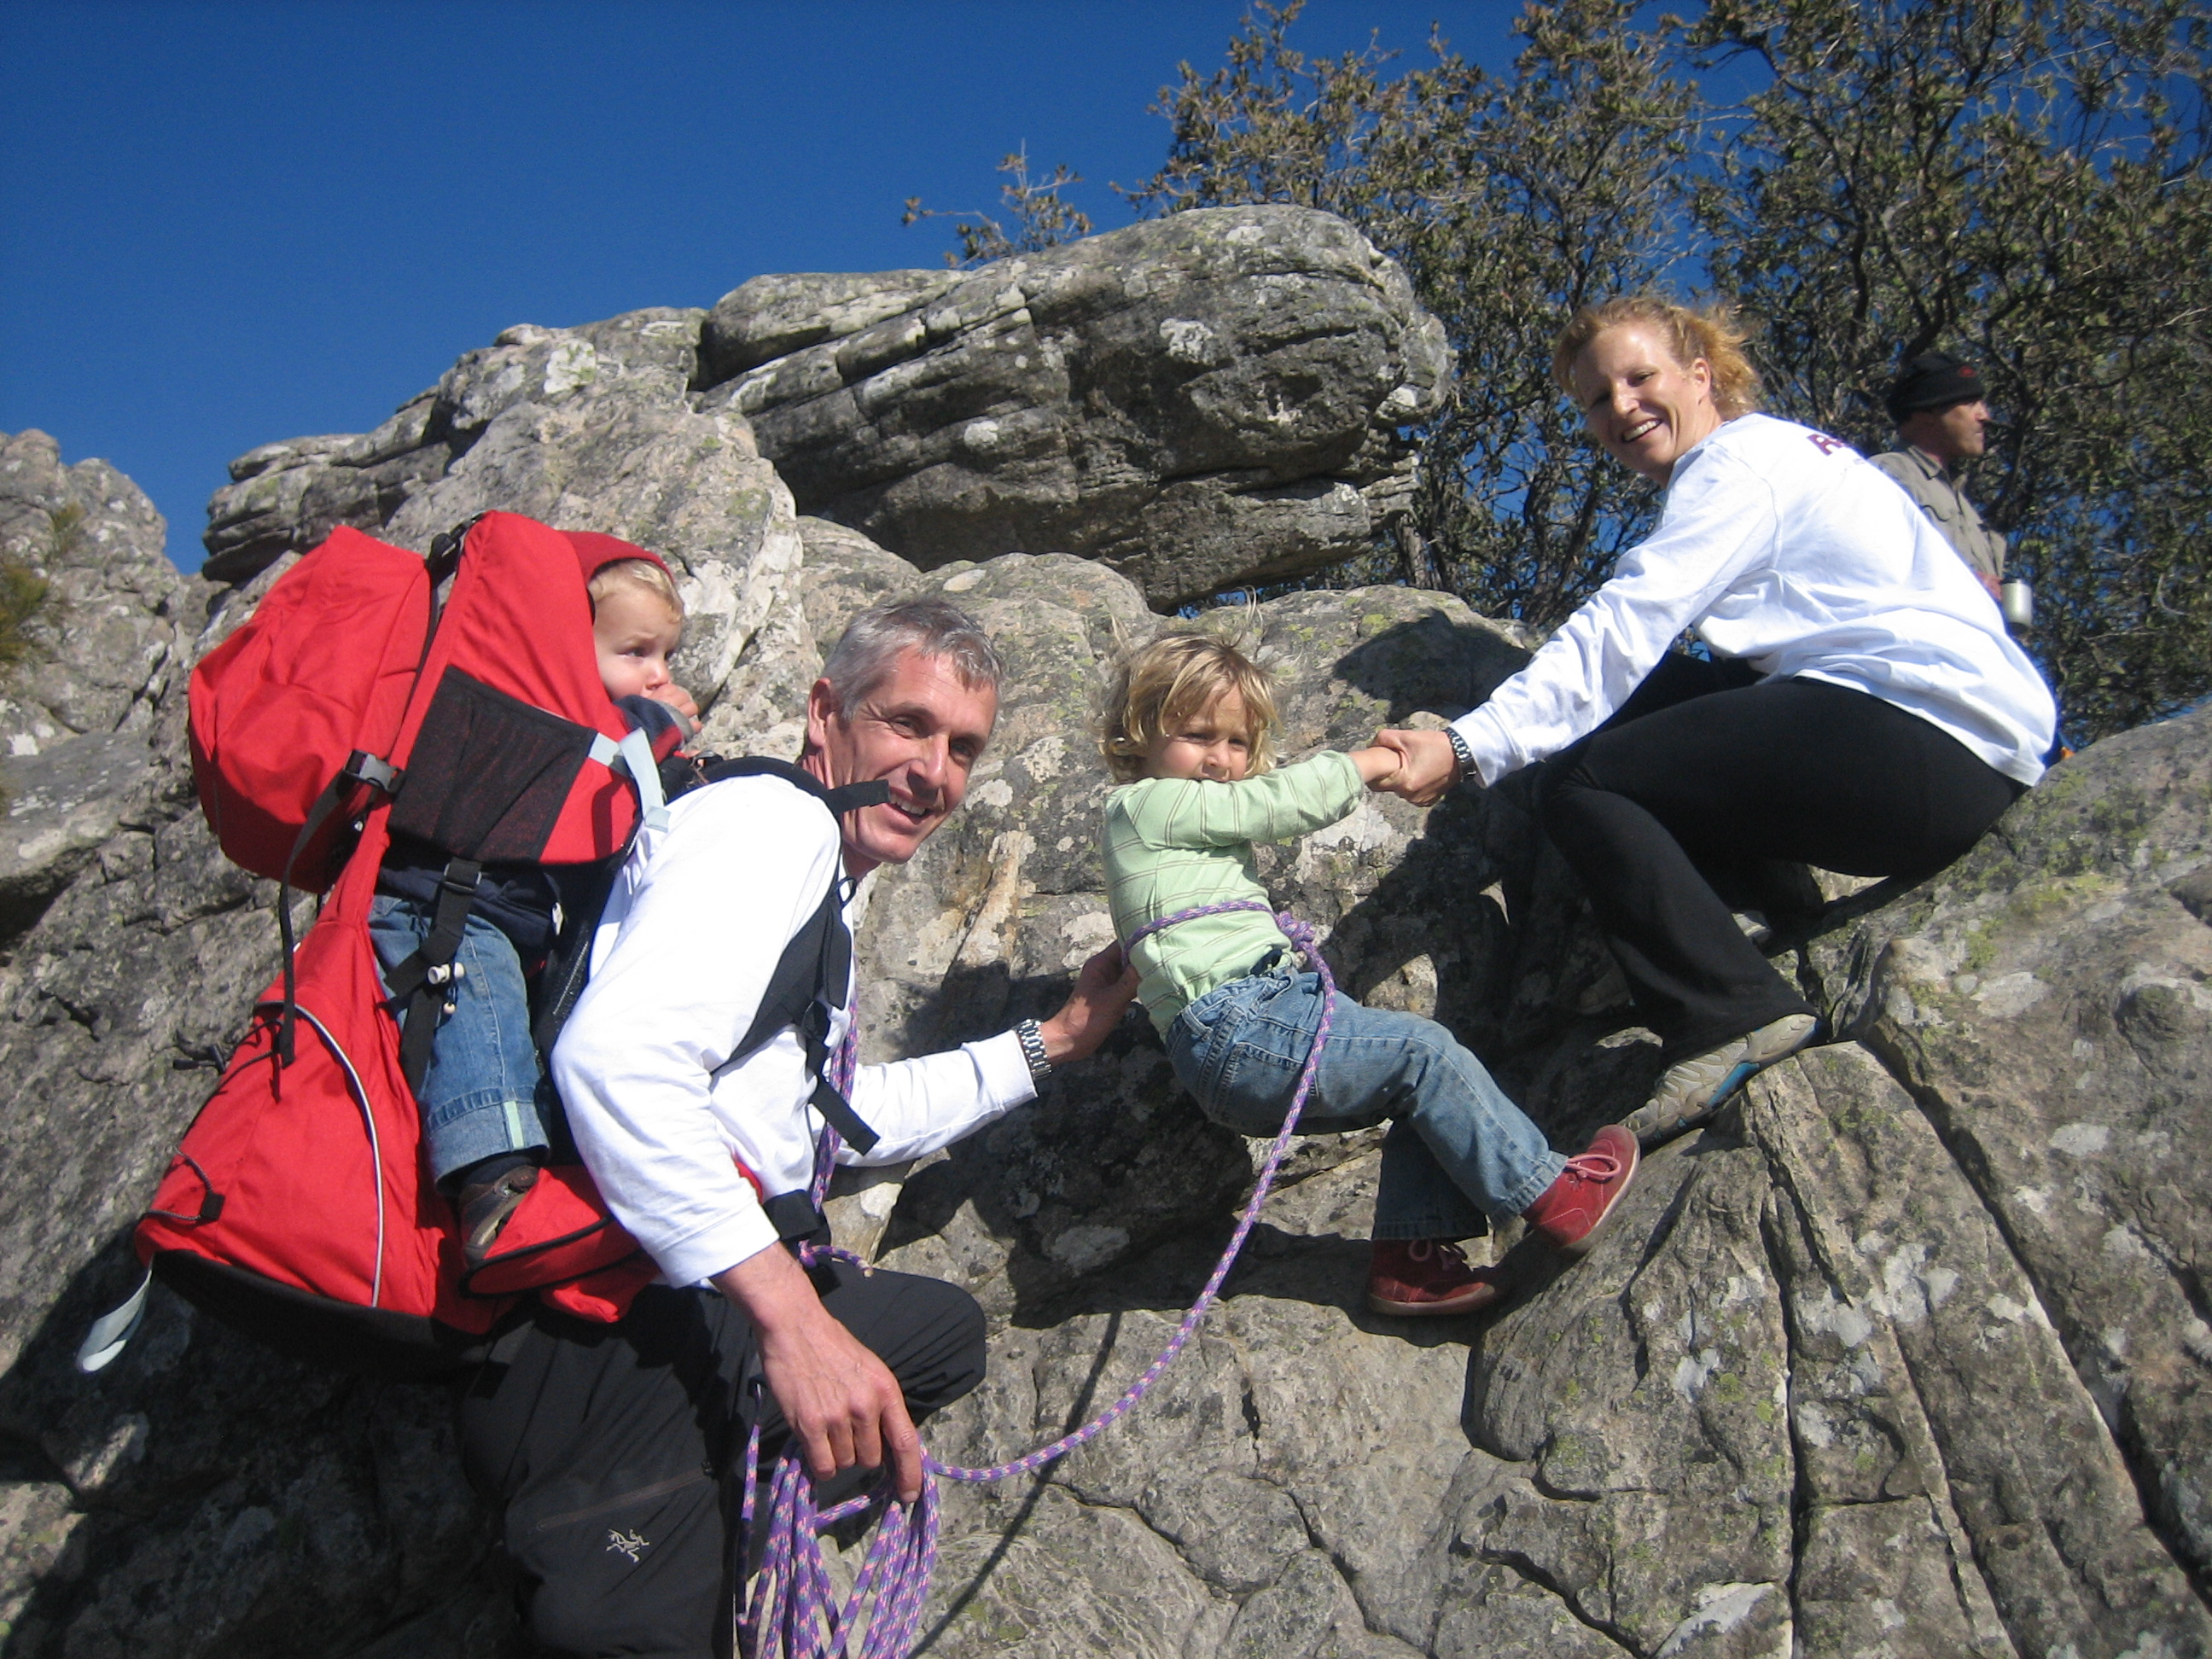 The Schoewer family climbing near Melbourne, Australia -